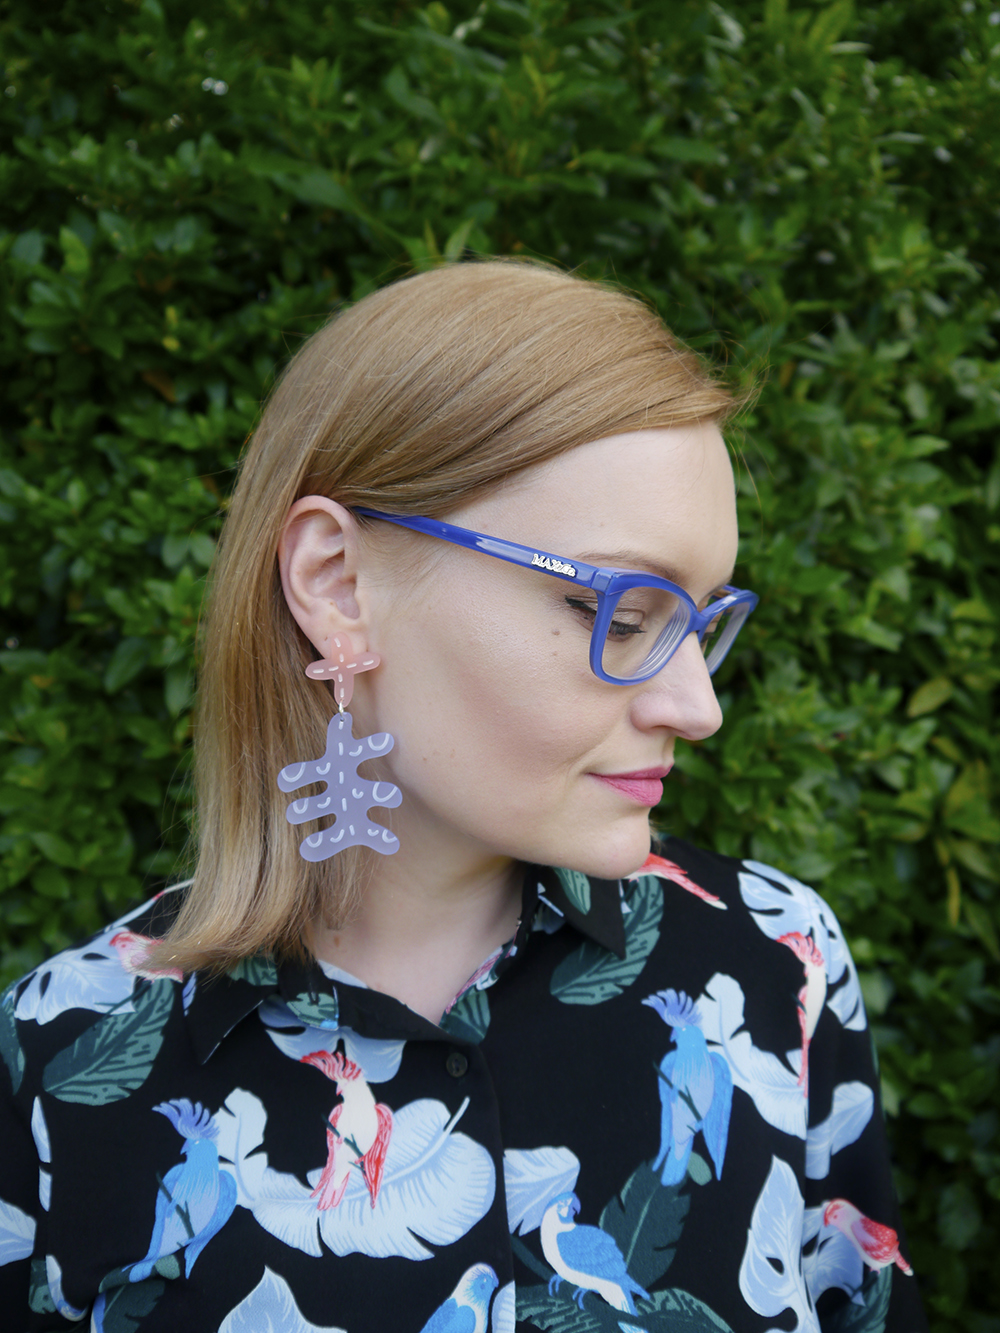 Blue Max and Co. from Specsavers glasses paired with Julia de Klerk earrings